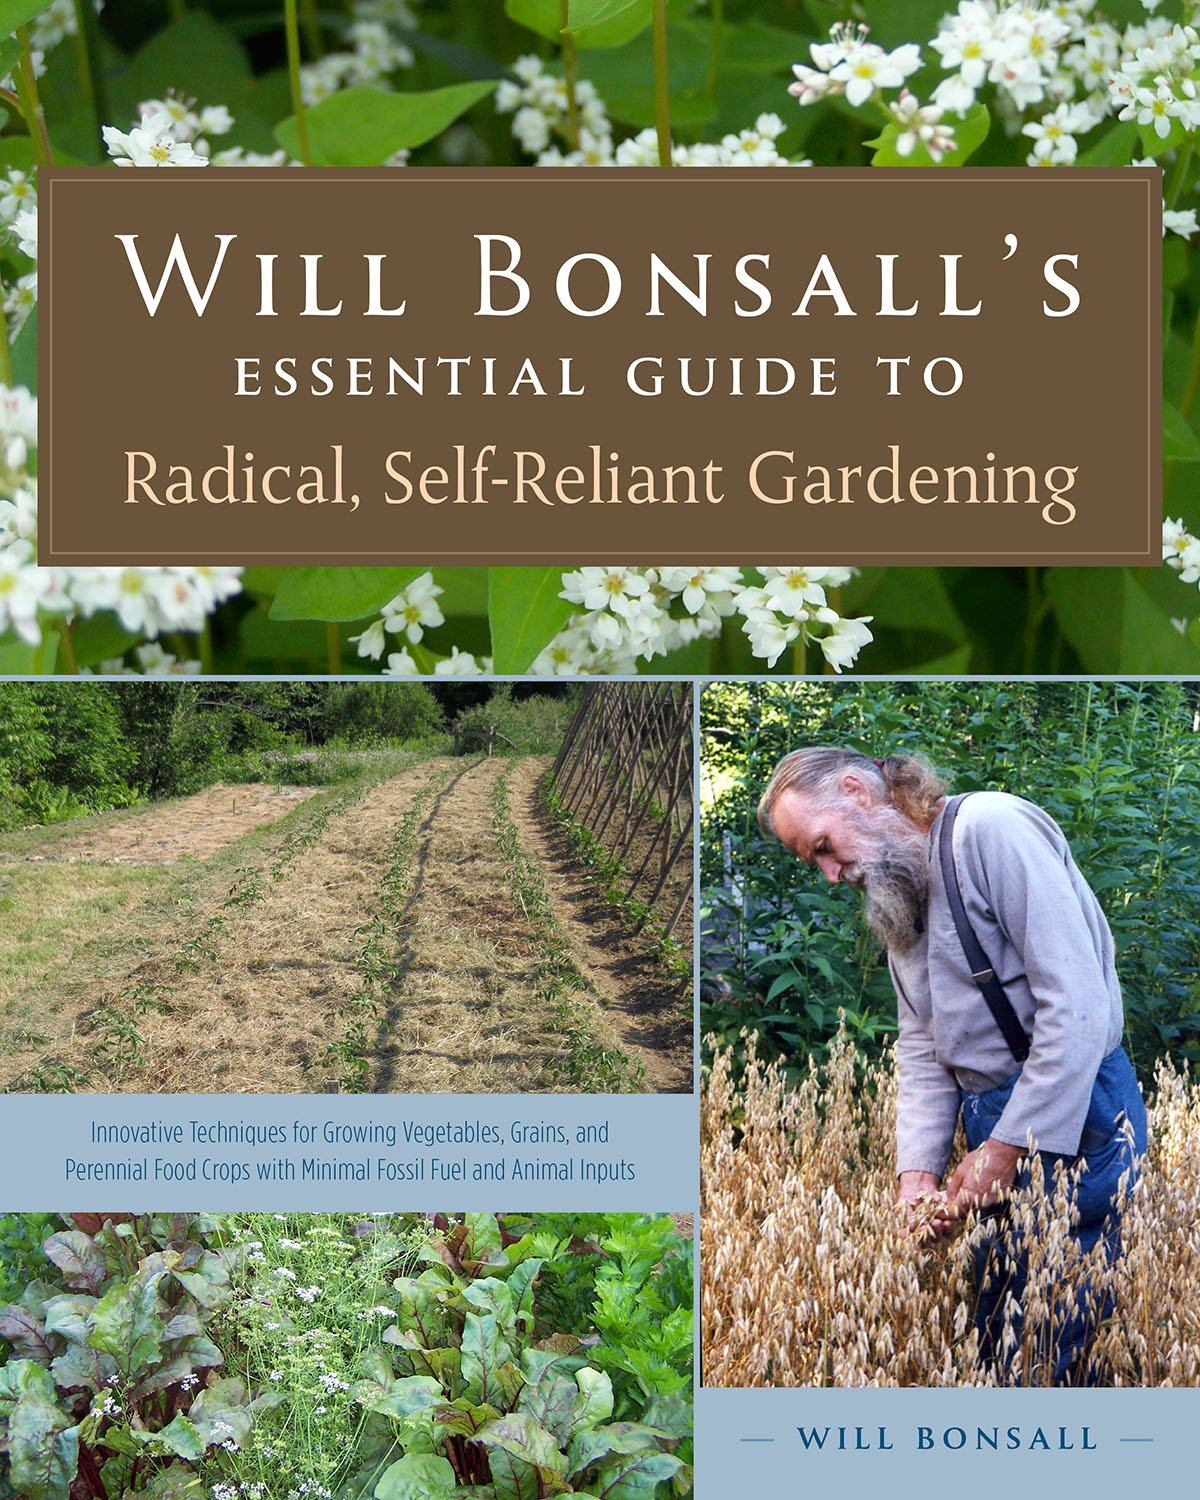 Will Bonsall's Essential Guide to Radical, Self-Reliant Gardening: Innovative Techniques for Growing Vegetables, Grains, and Perennial Food Crops with Minimal Fossil Fuel and Animal Inputs pdf epub